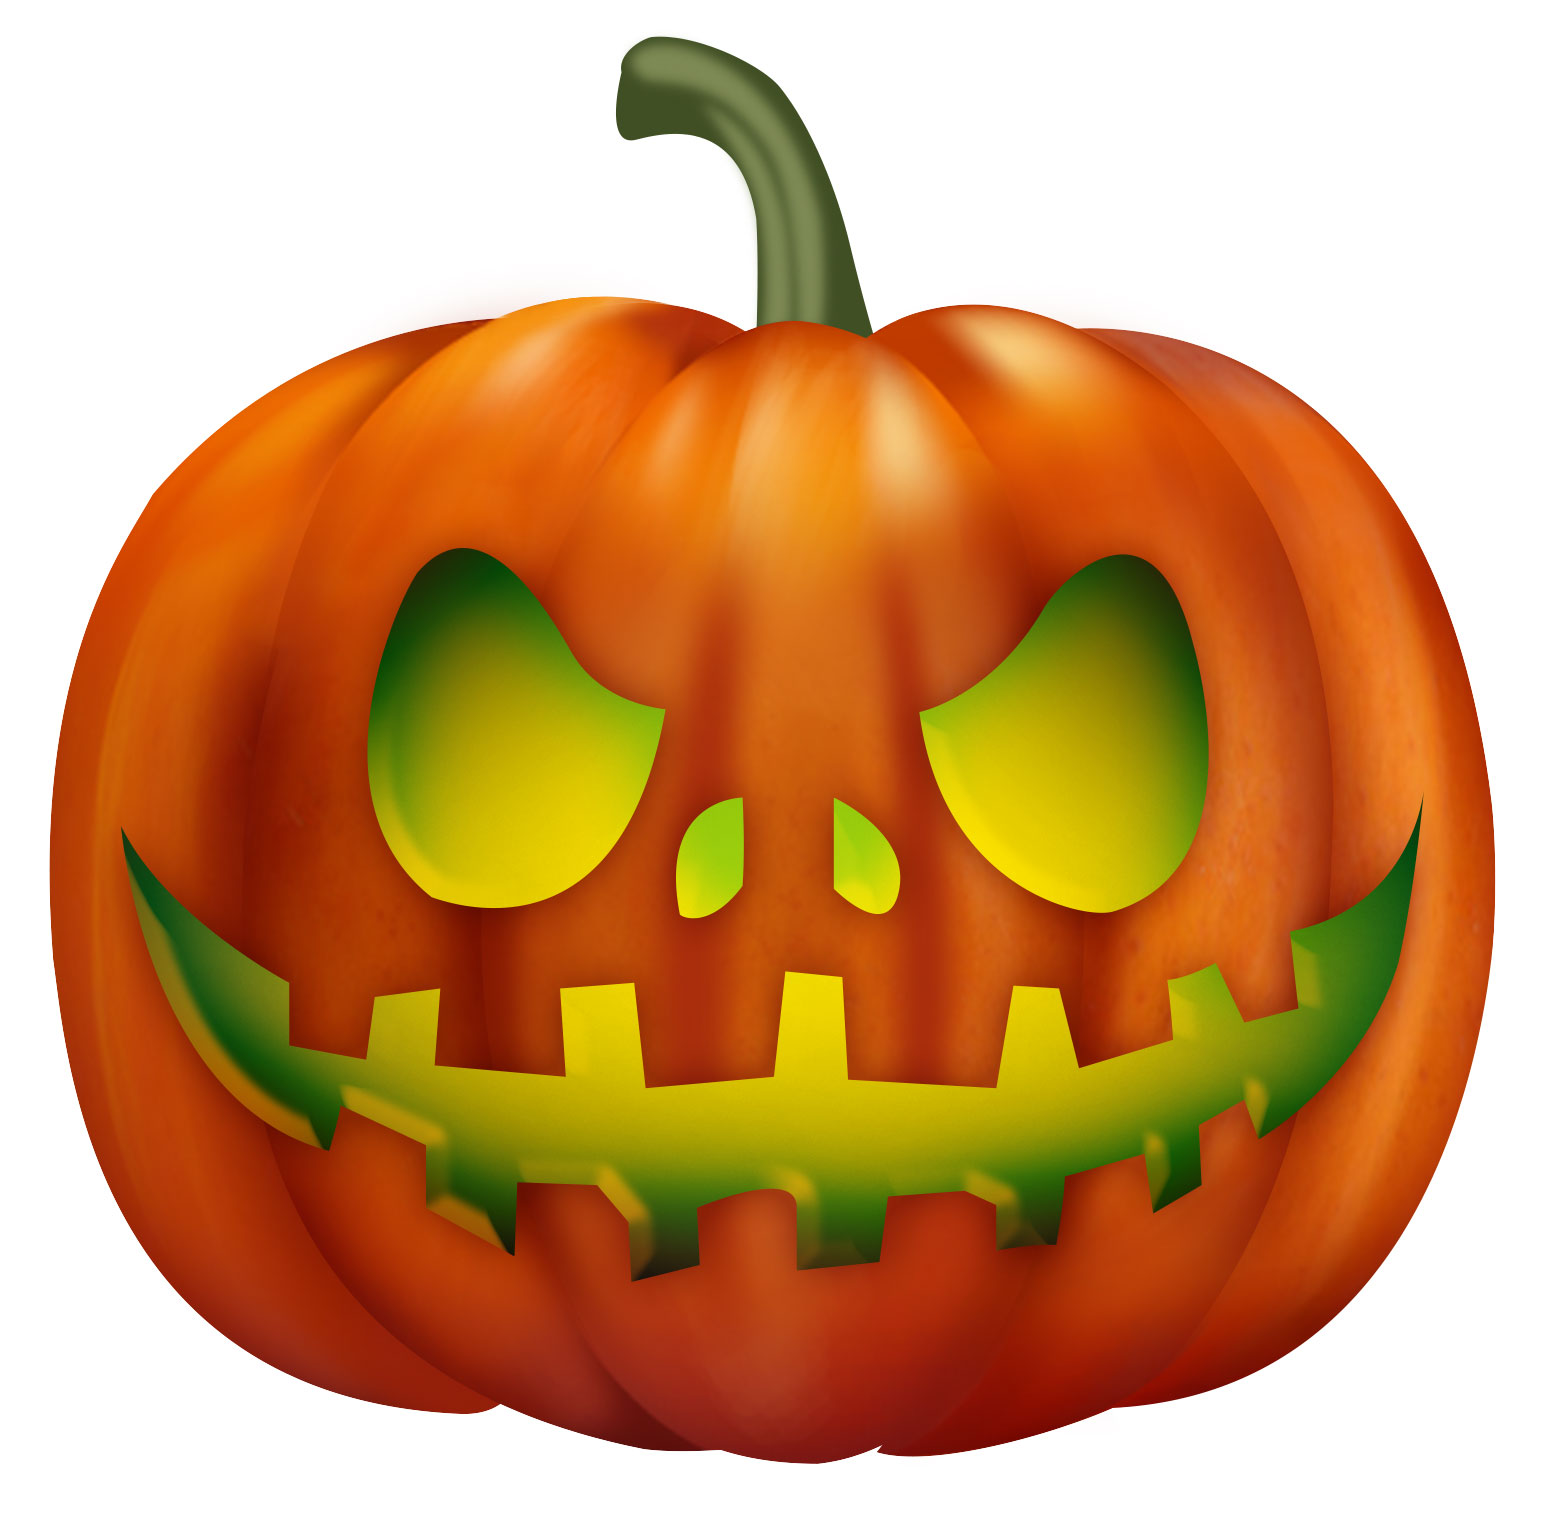 Animated Halloween Images